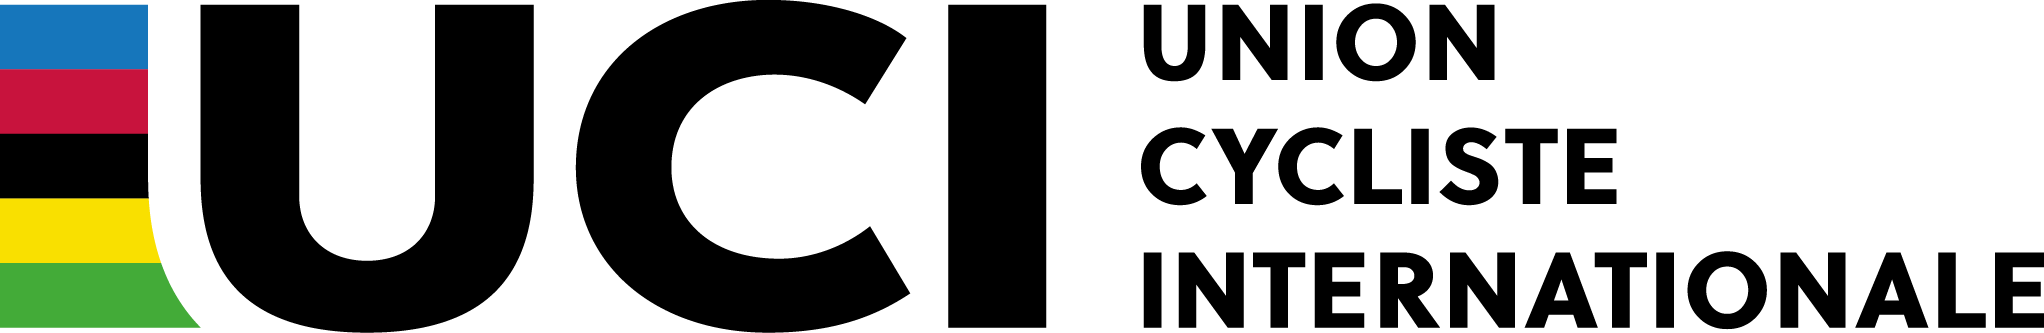 Union-Cycliste-Internationale-UCI-logo.png